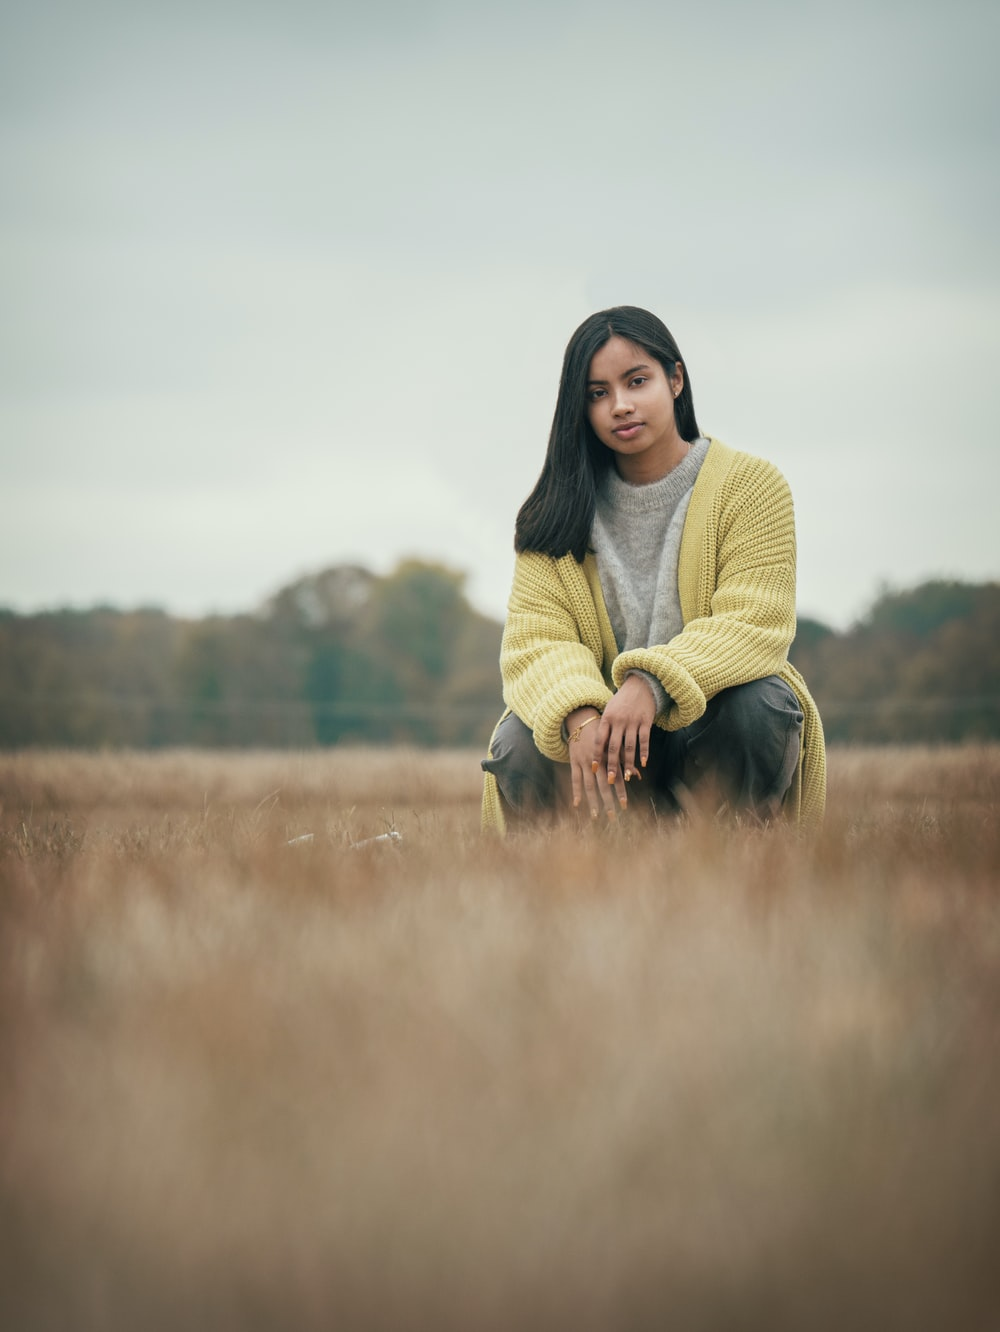 woman in yellow sweater and black pants standing on brown grass field during daytime